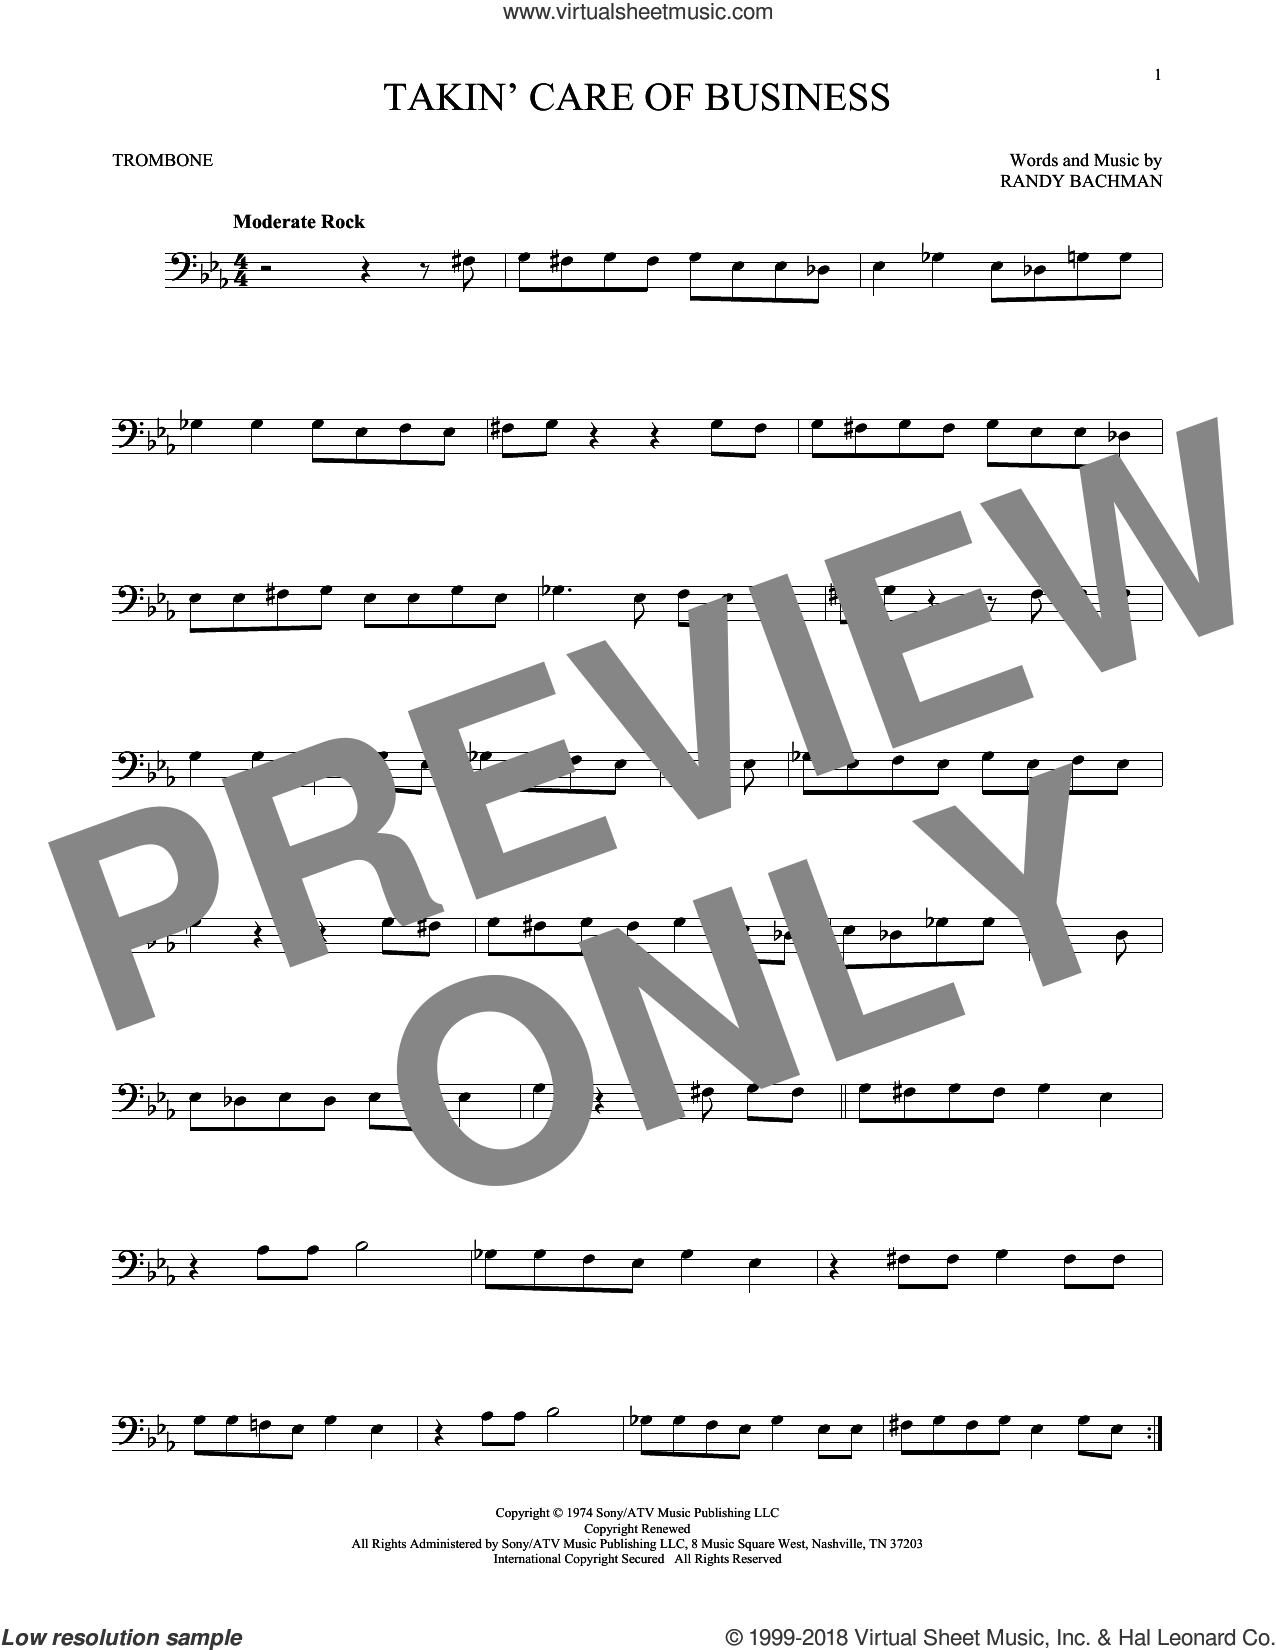 Takin' Care Of Business sheet music for trombone solo by Randy Bachman. Score Image Preview.